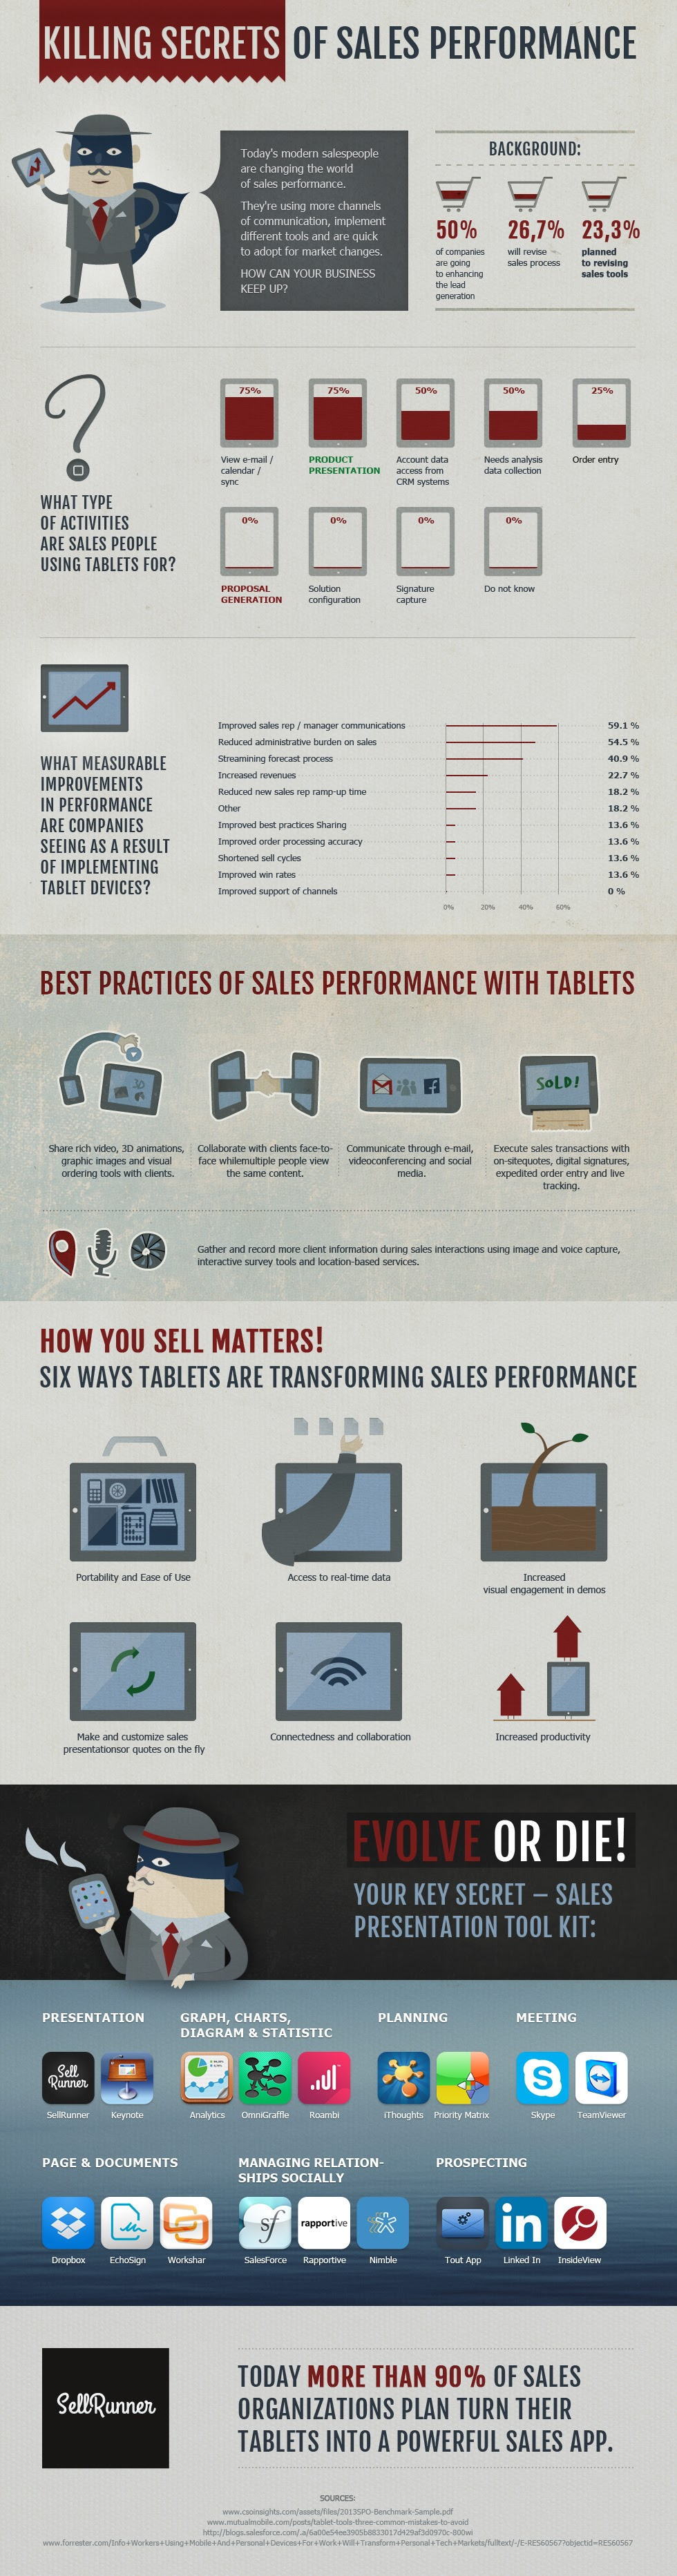 Killing Secrets Of Sales Performance #infographic